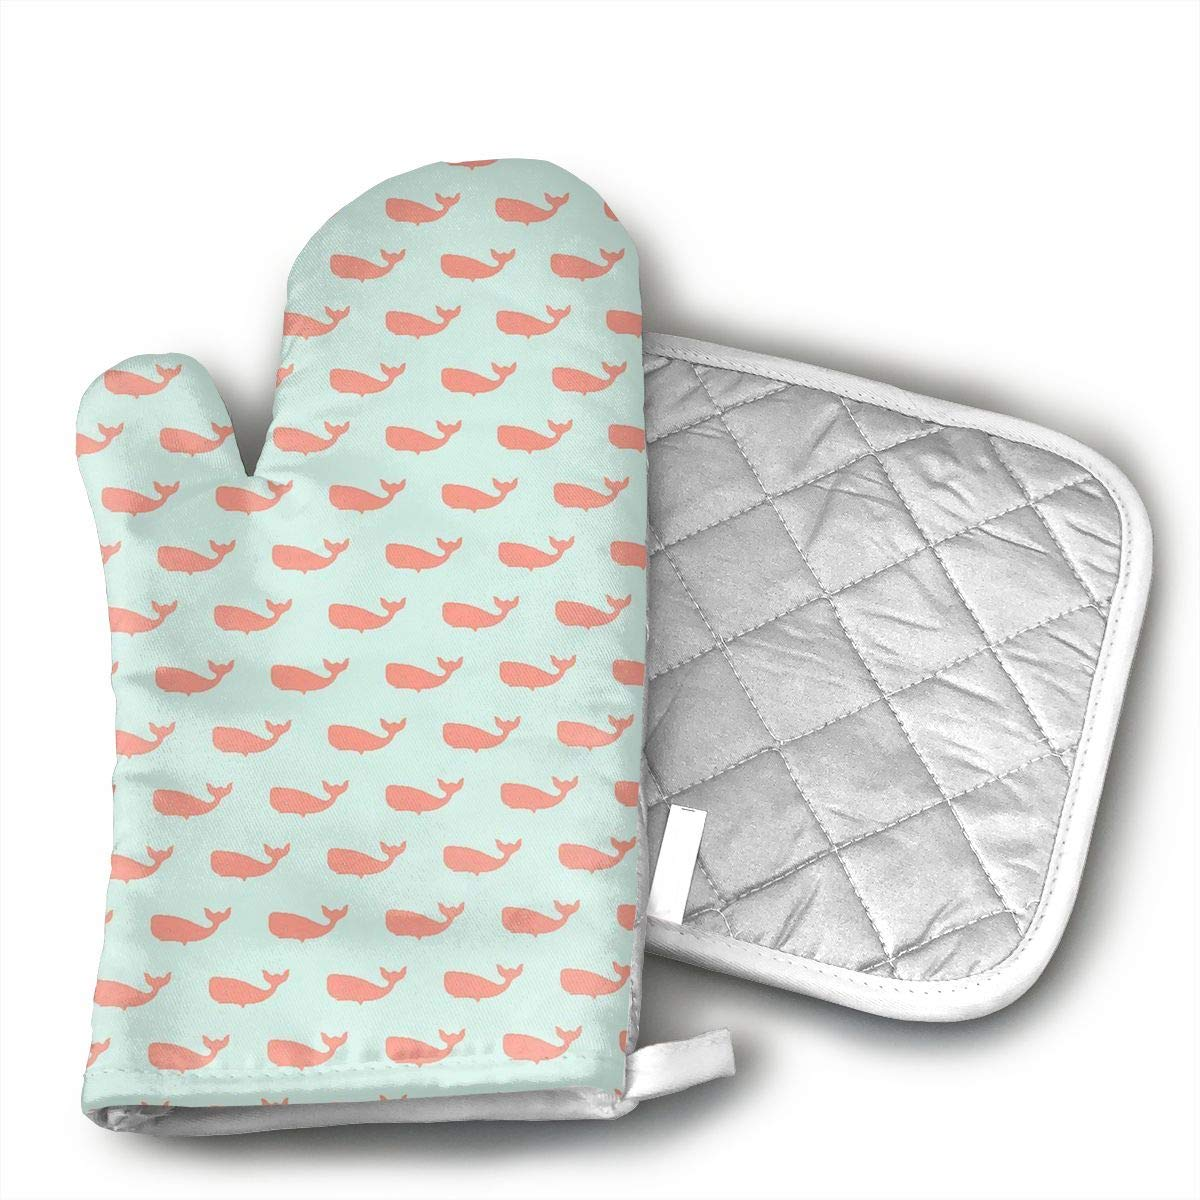 Preppy Whale Spa Oven Mitts Printing Cotton Lining, Kitchen Oven Gloves Pot Holder for Cooking, Barbecue Cooking Baking, Barbecue